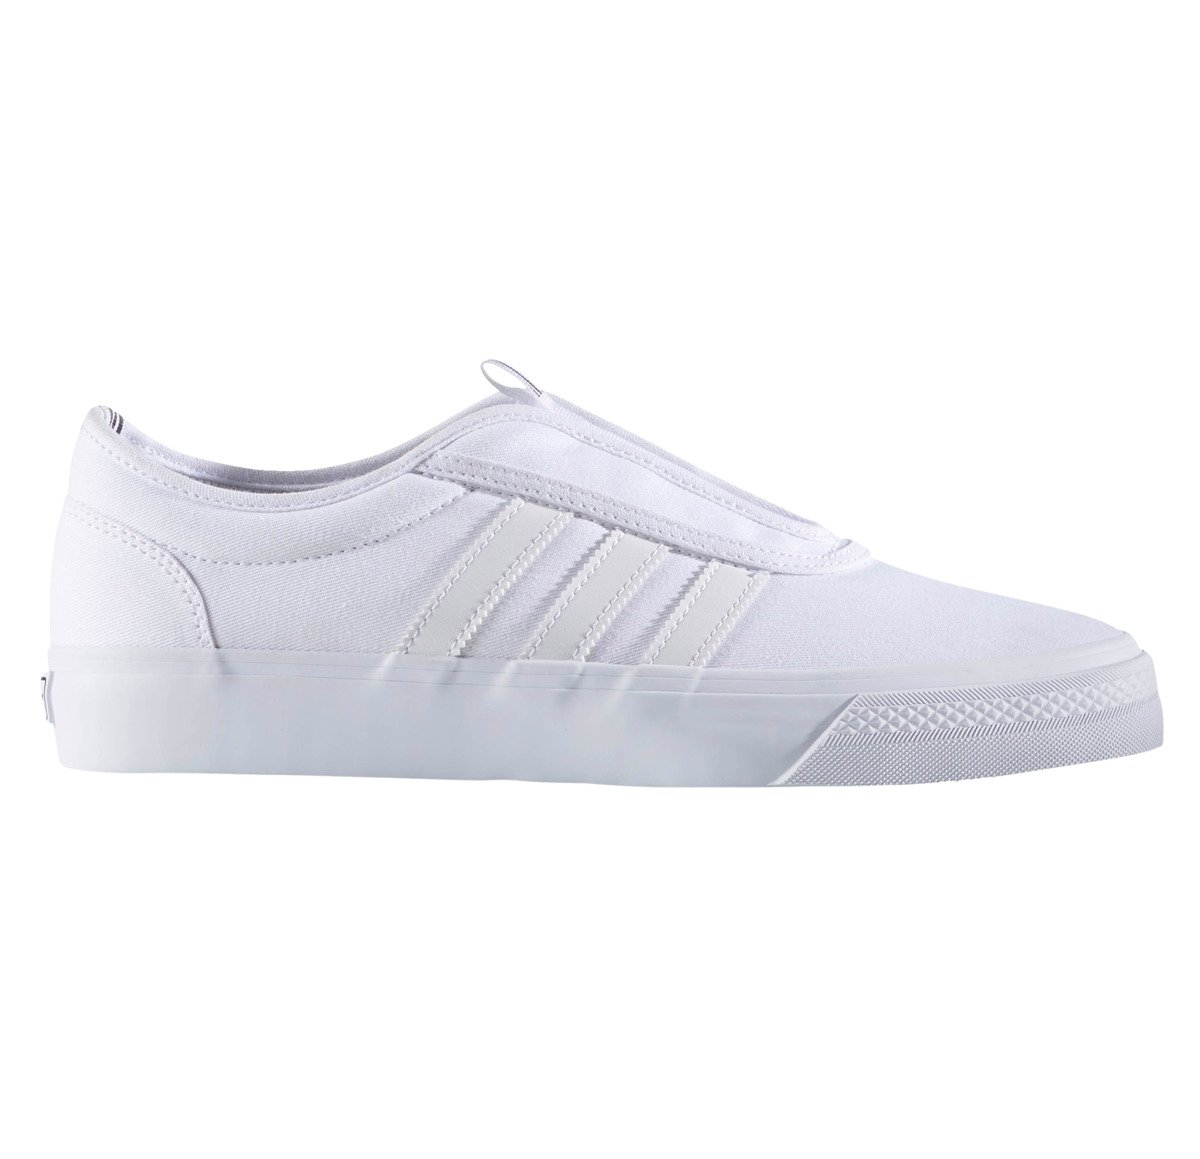 53615be53469e shoes adidas skateboarding adi-ease kung-fu | Shoes \ Adidas ...